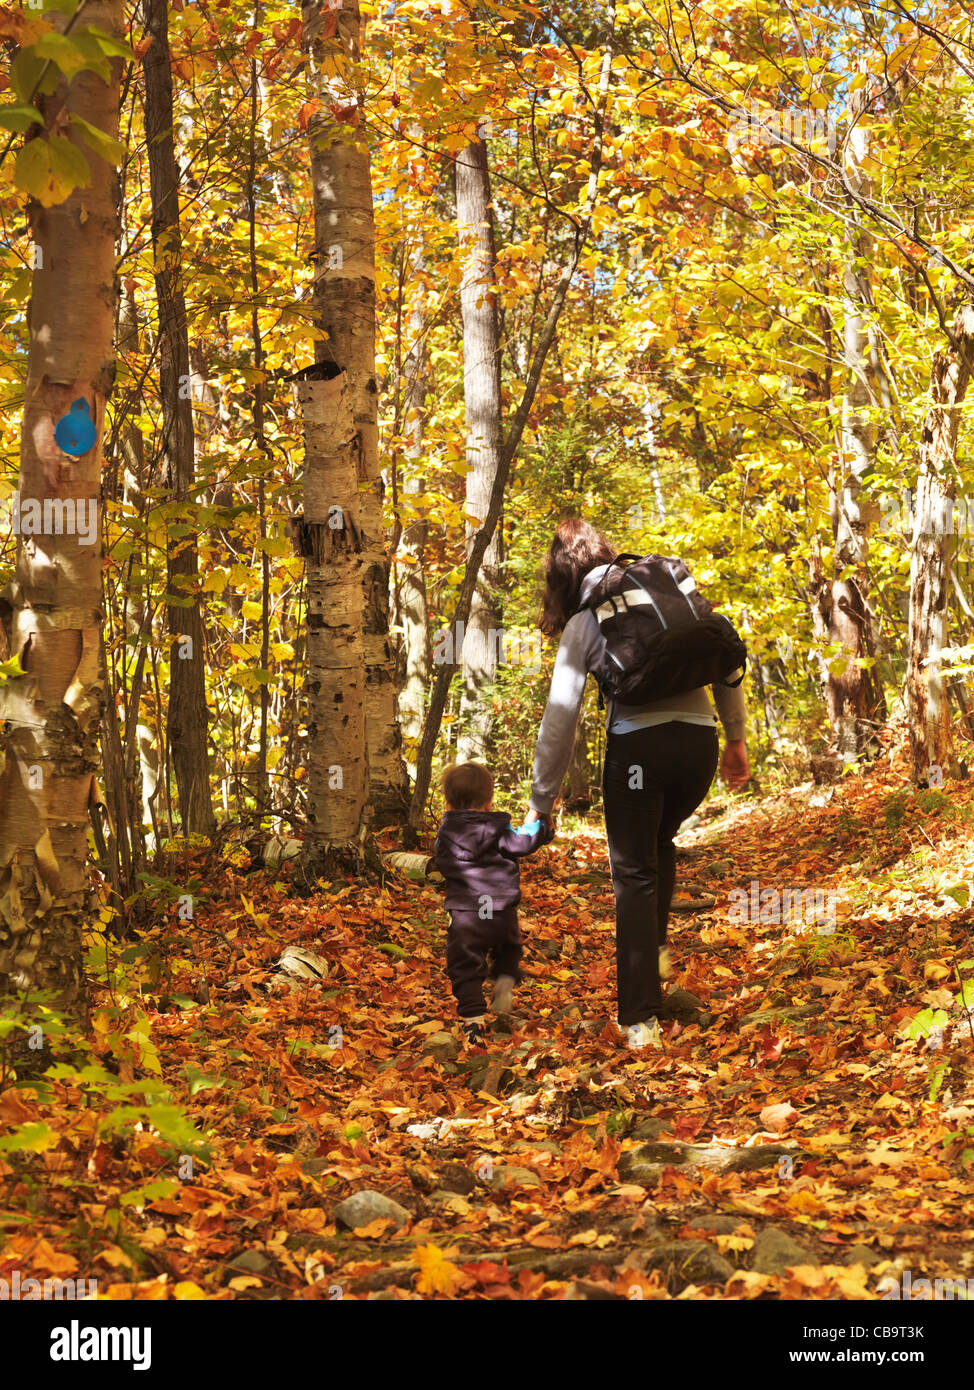 Woman with a child walking along a hiking trail in fall nature scenery. Killarney Provincial Park, Ontario, Canada - Stock Image